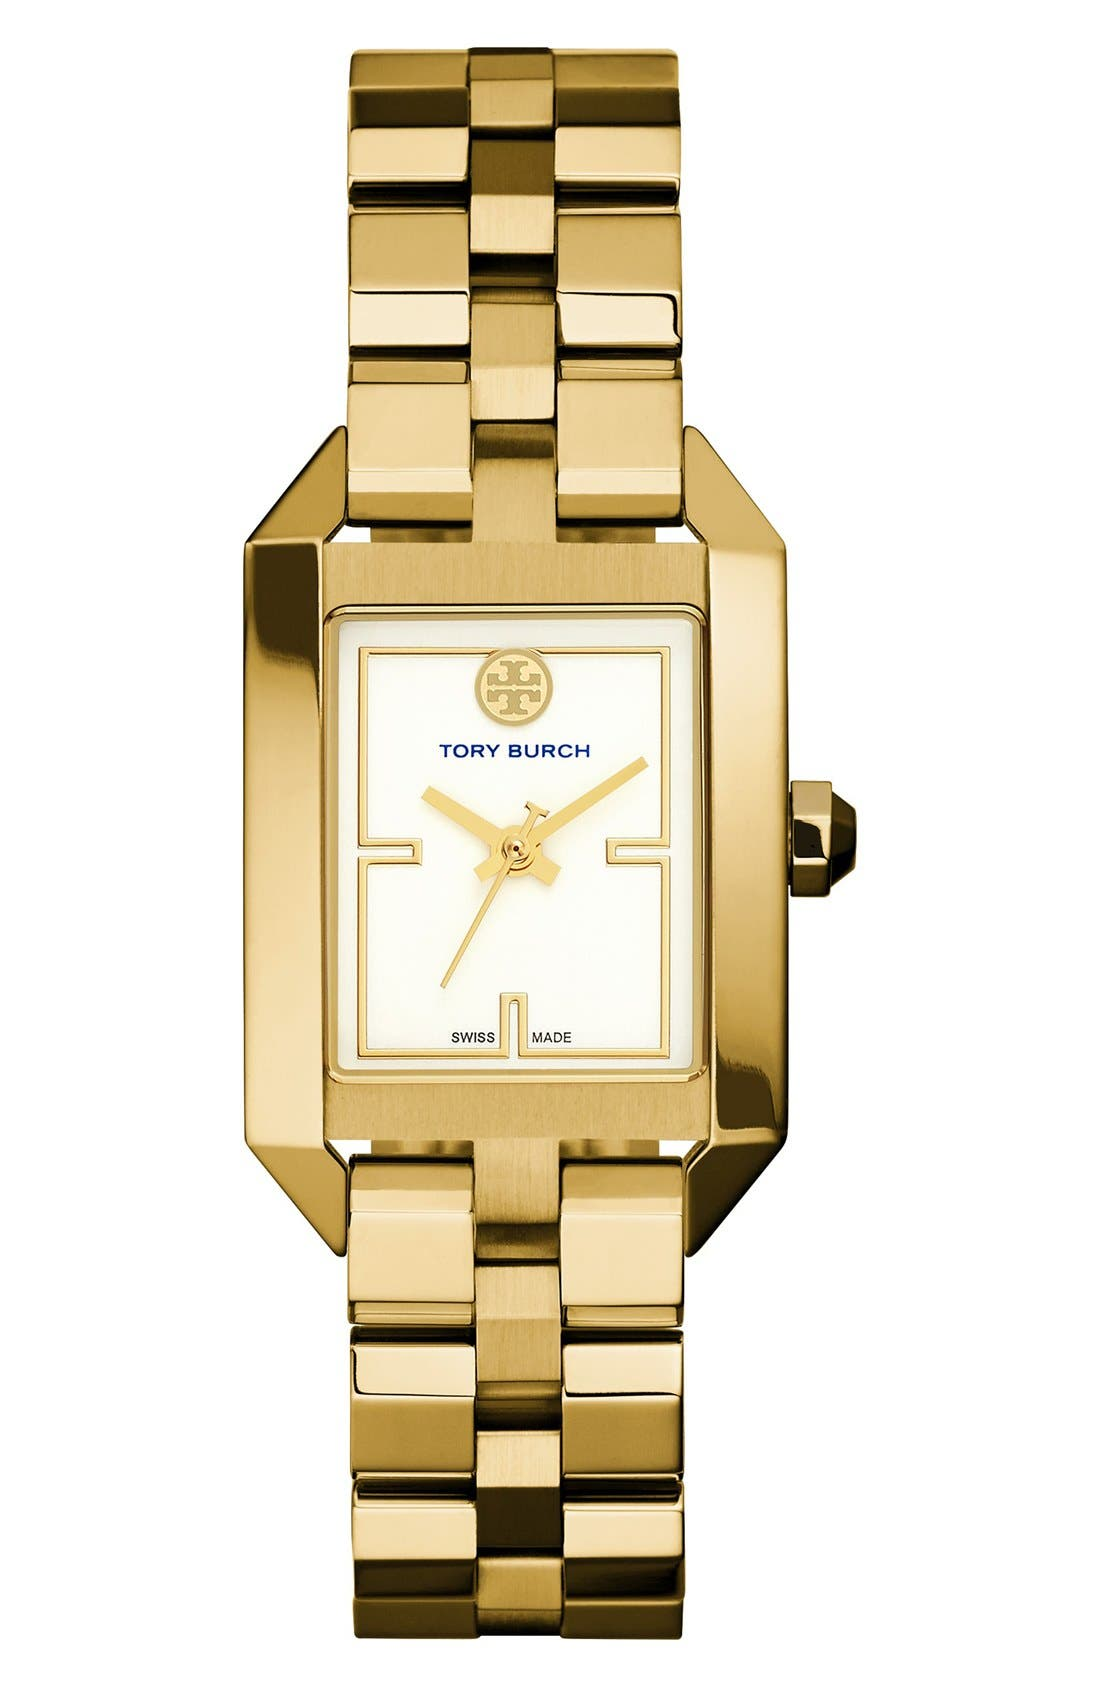 Alternate Image 1 Selected - Tory Burch 'Dalloway' Bracelet Watch, 23mm x 35mm